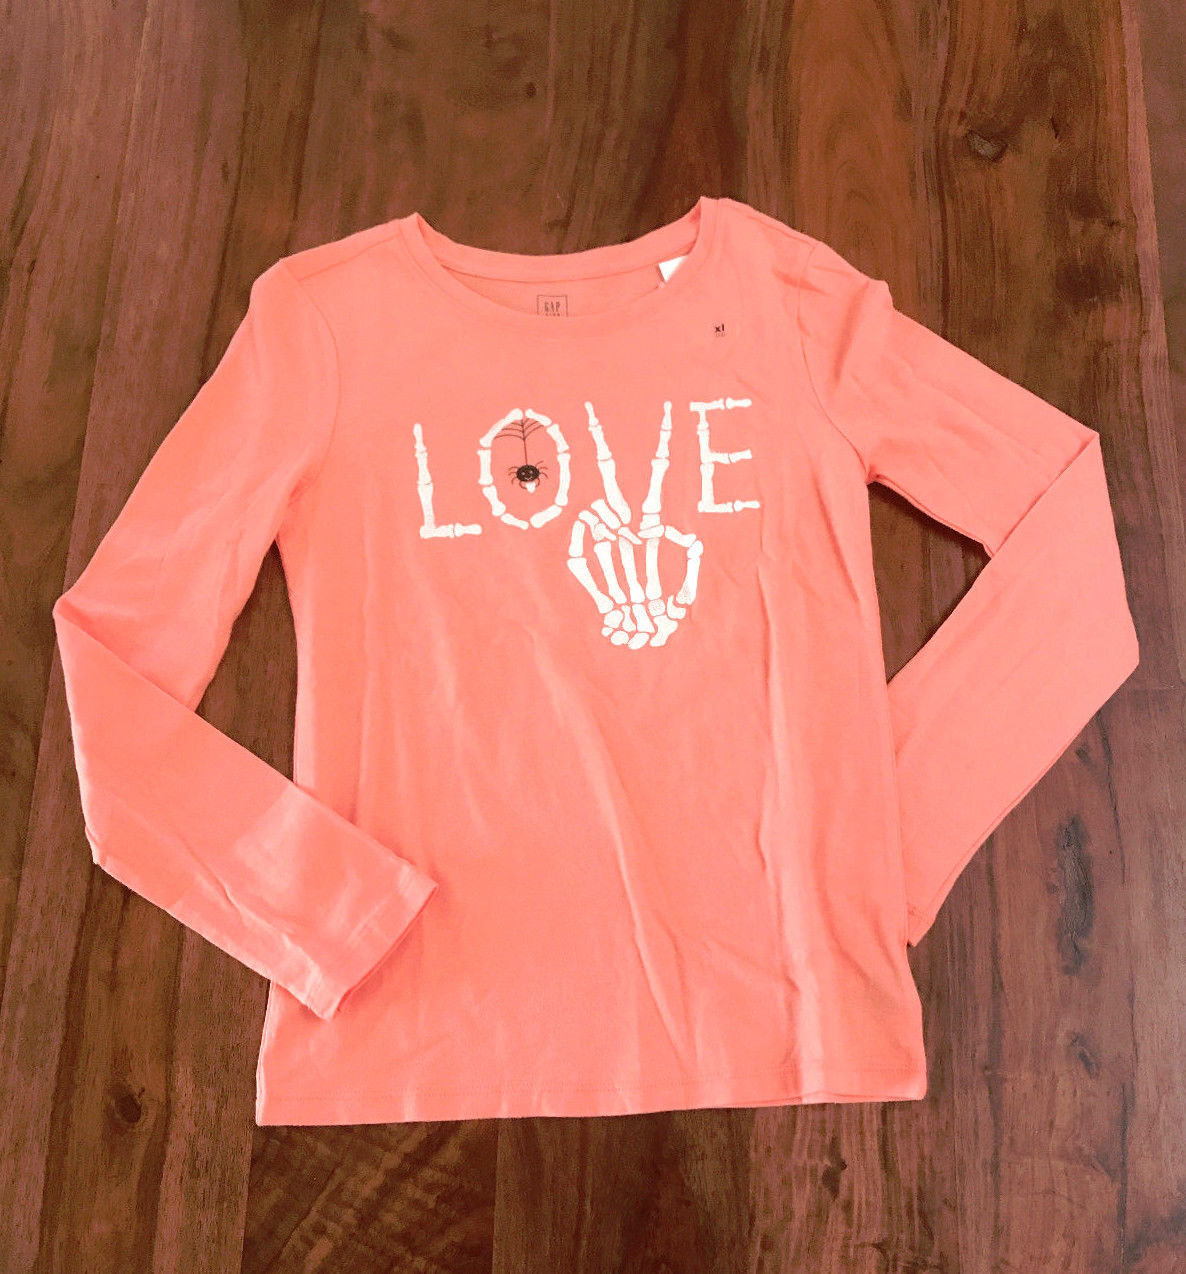 Gap Kids Girls Tee Shirt 12 14 16 Orange Long Sleeve Crew Neck LOVE Graphic New